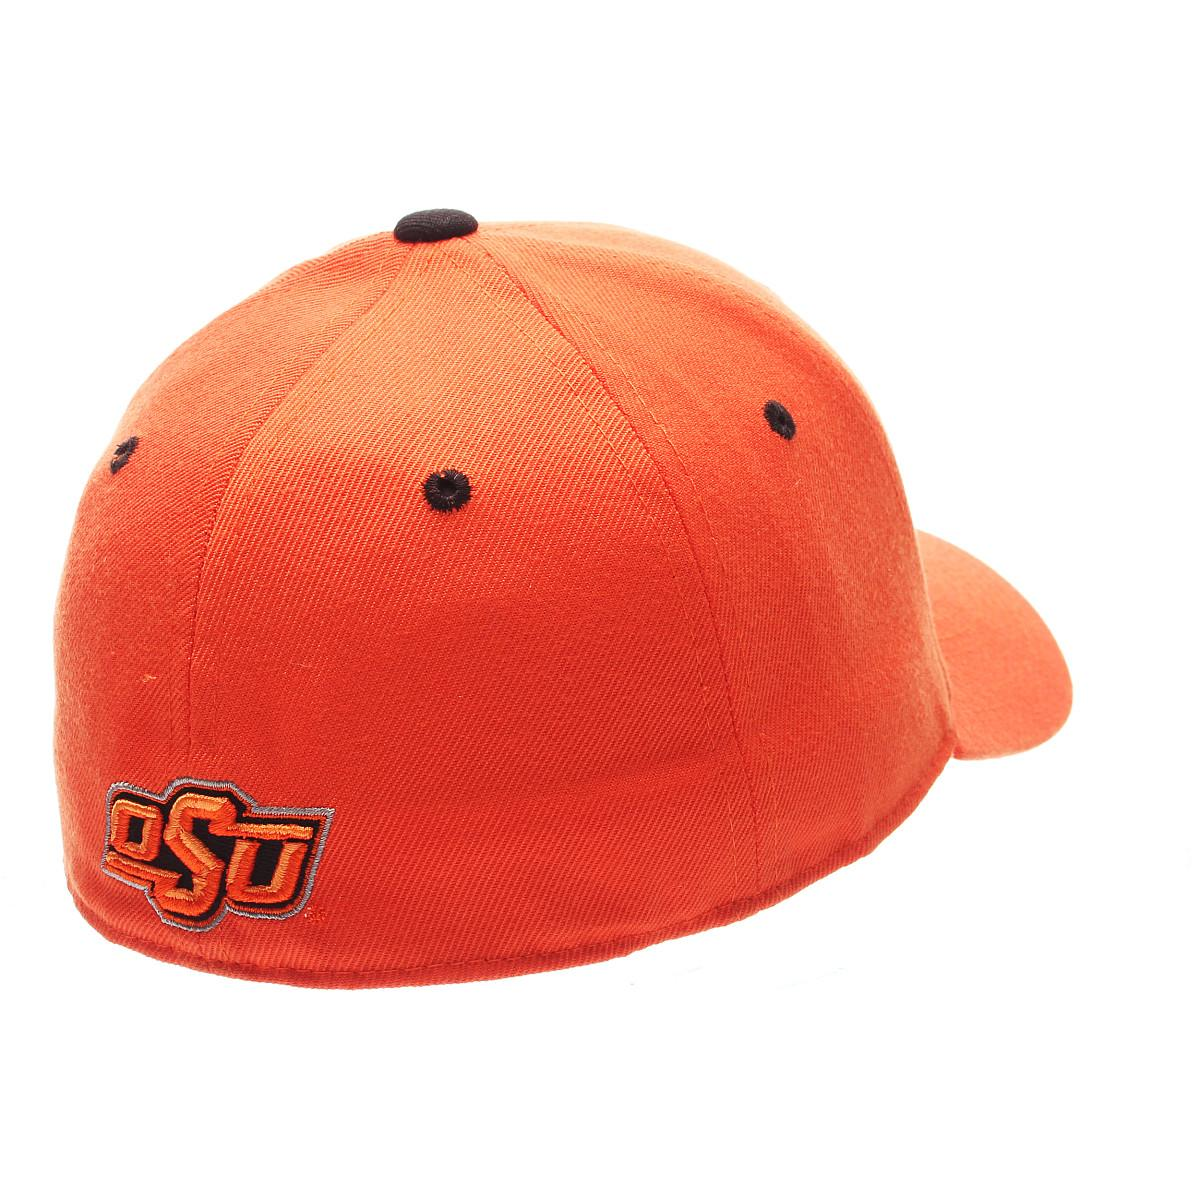 ZEPHYR-MEN-039-S-OKLAHOMA-STATE-COWBOYS-DHS-ZWOOL-FITTED-HAT thumbnail 5